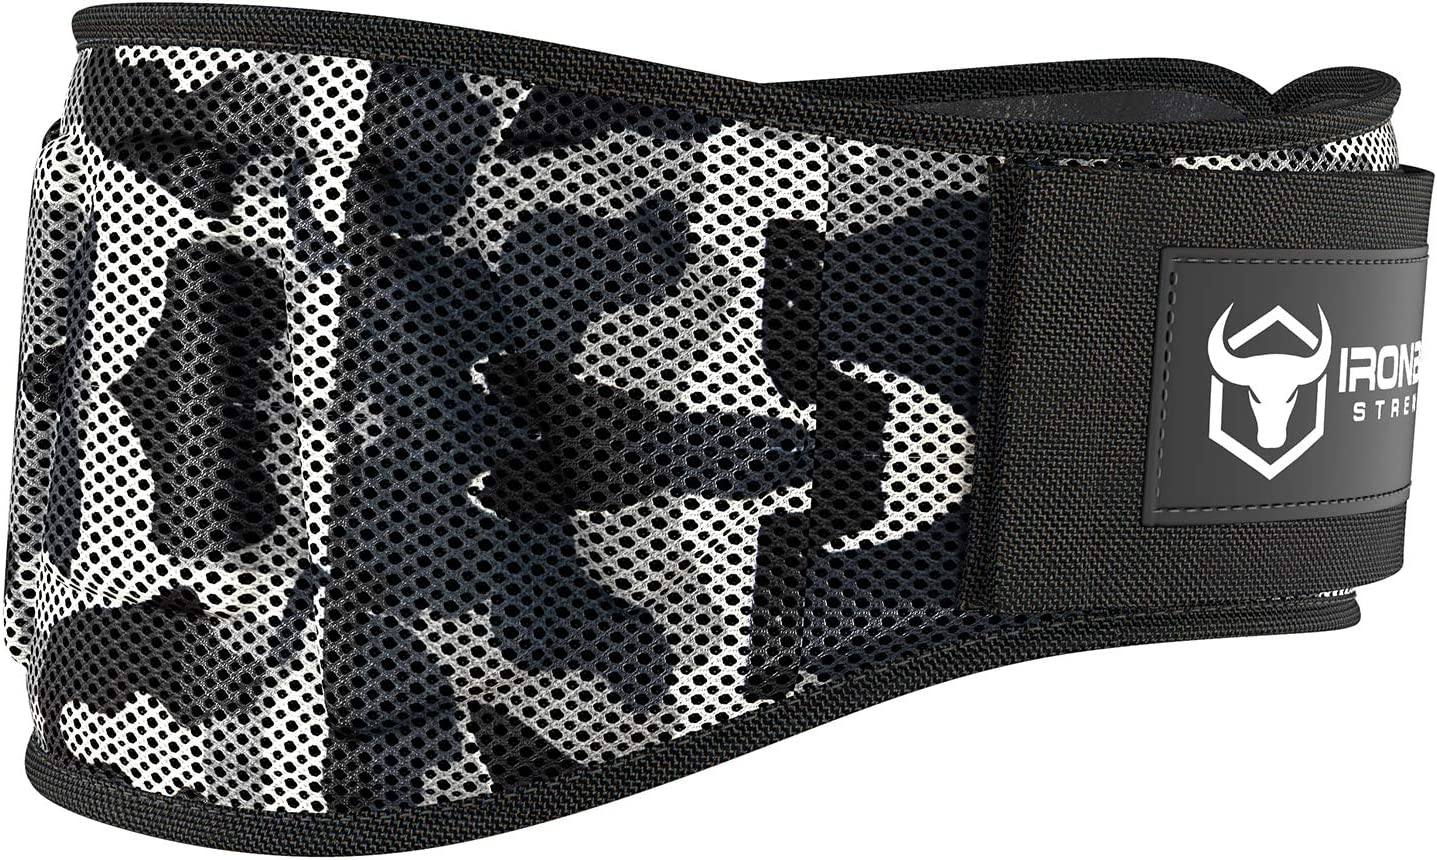 Iron Bull Strength Weightlifting Belt for Men and Women - 6 Inch Auto-Lock Weight Lifting Back Support, Workout Back Support for Lifting, Fitness, Cross Training and Powerlifitng : Sports & Outdoors